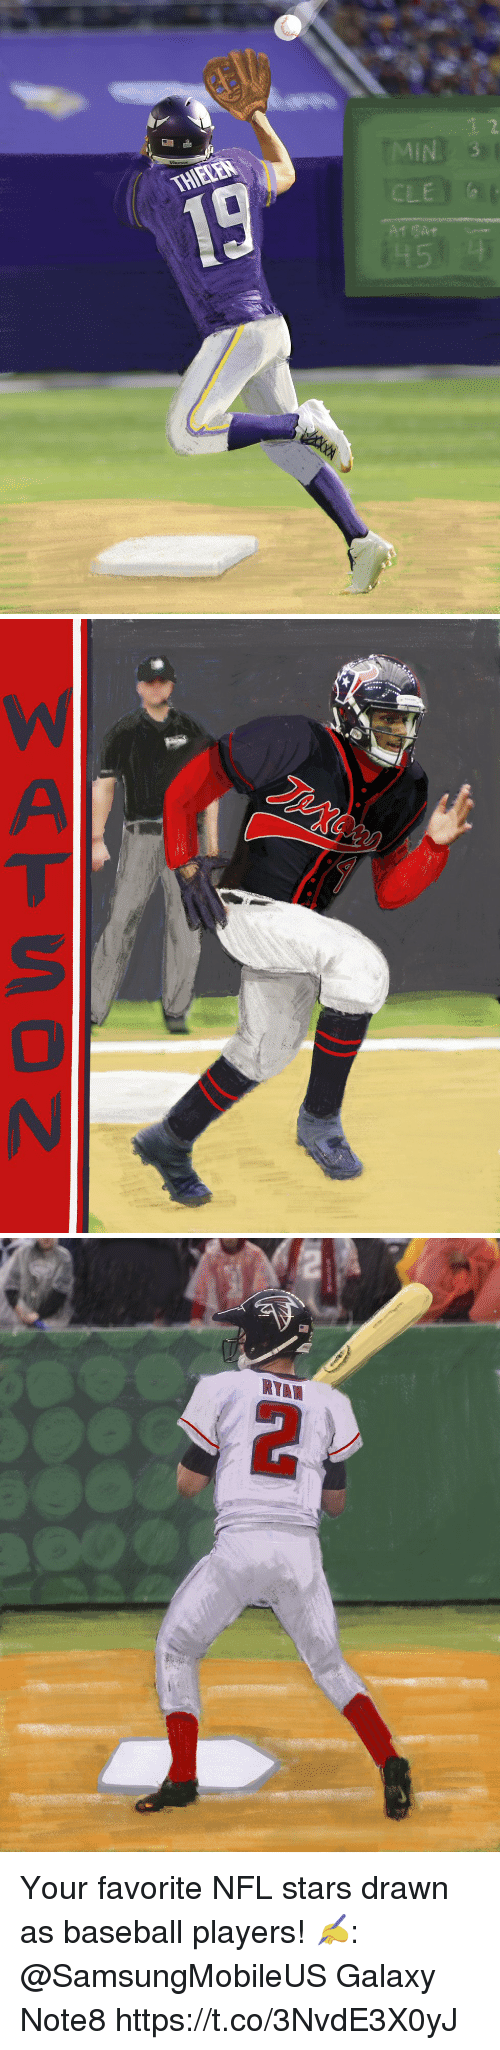 2 in le your favorite nfl stars drawn as baseball players